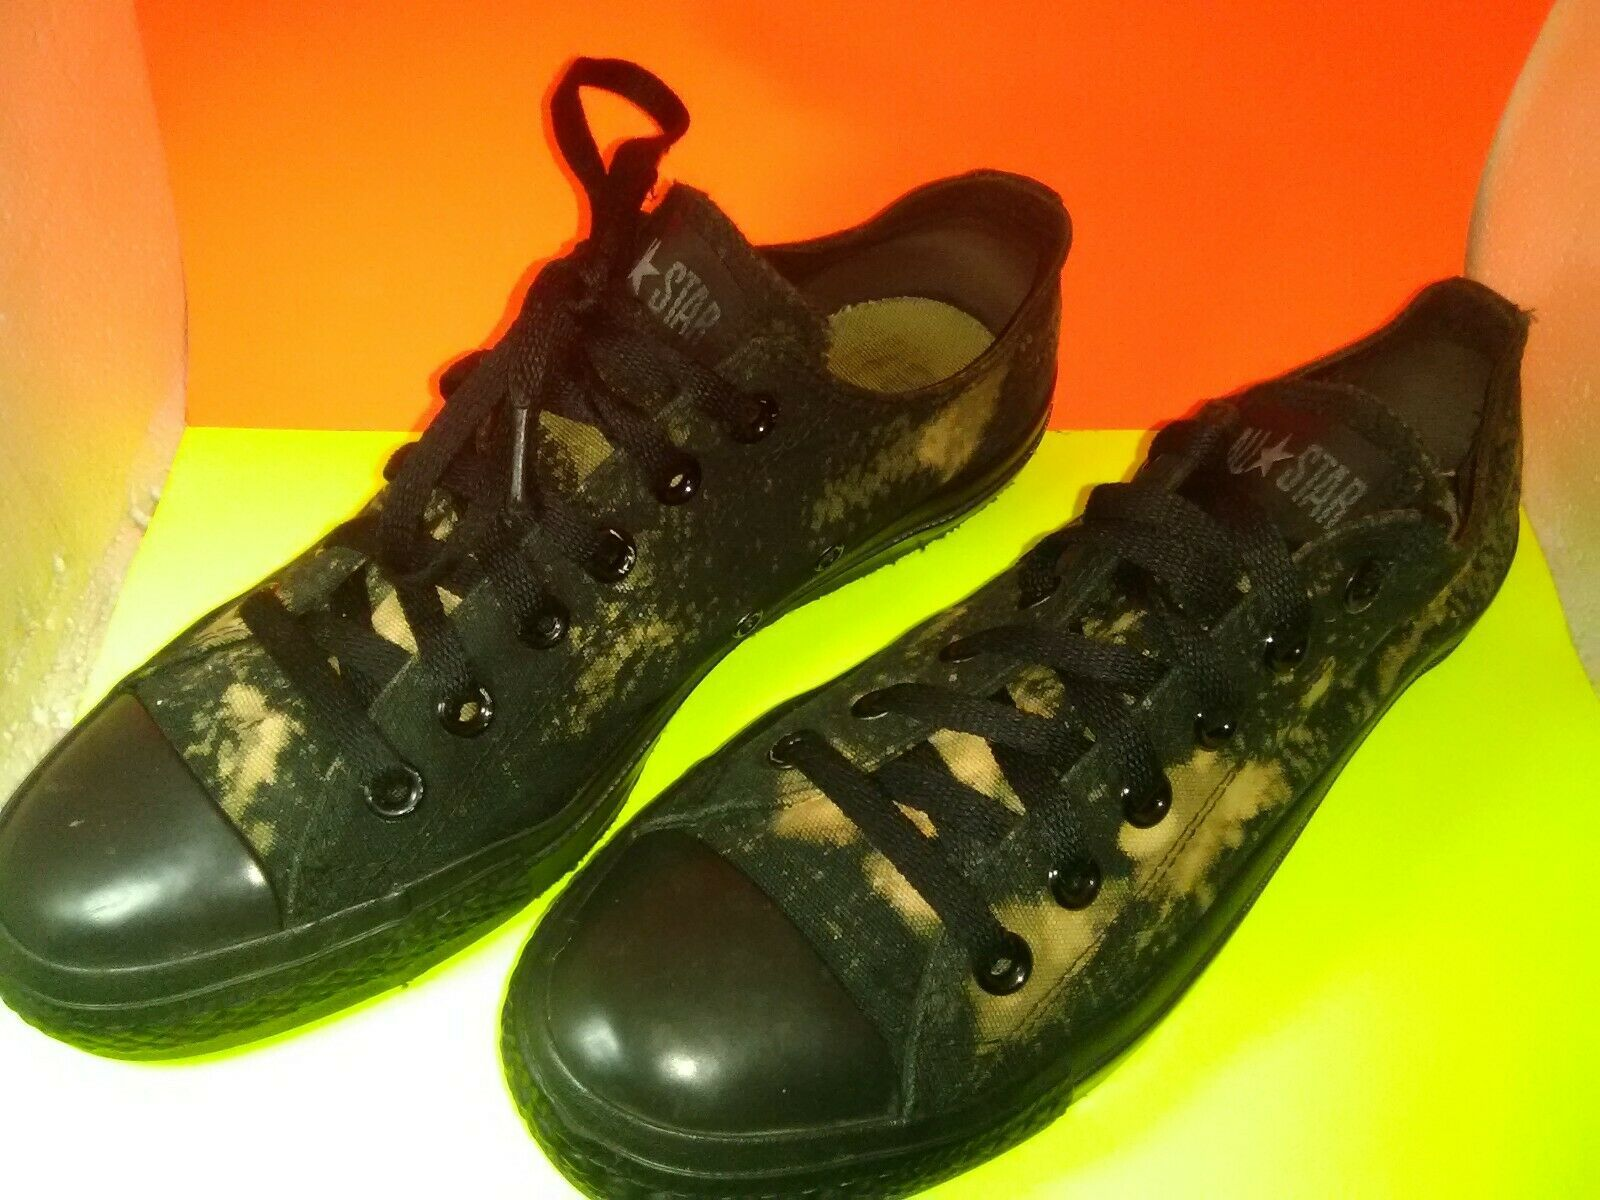 CONVERSE CHUCK TAYLOR ALL STARS BLACK MULTI CANVAS LOW SNEAKERS M5039